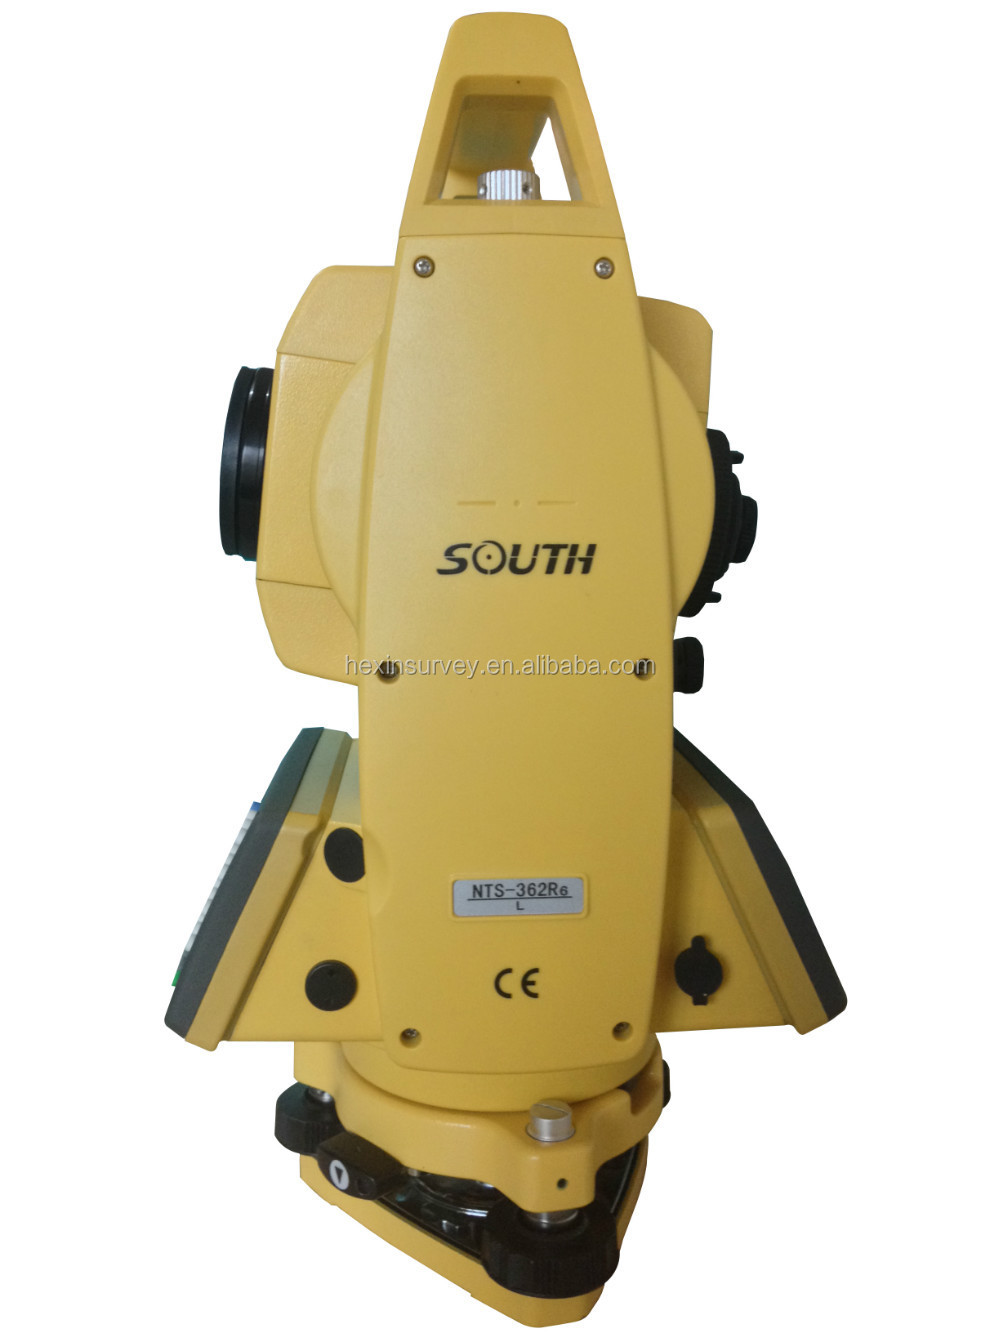 South NTS362R6 total station 600m reflectorless